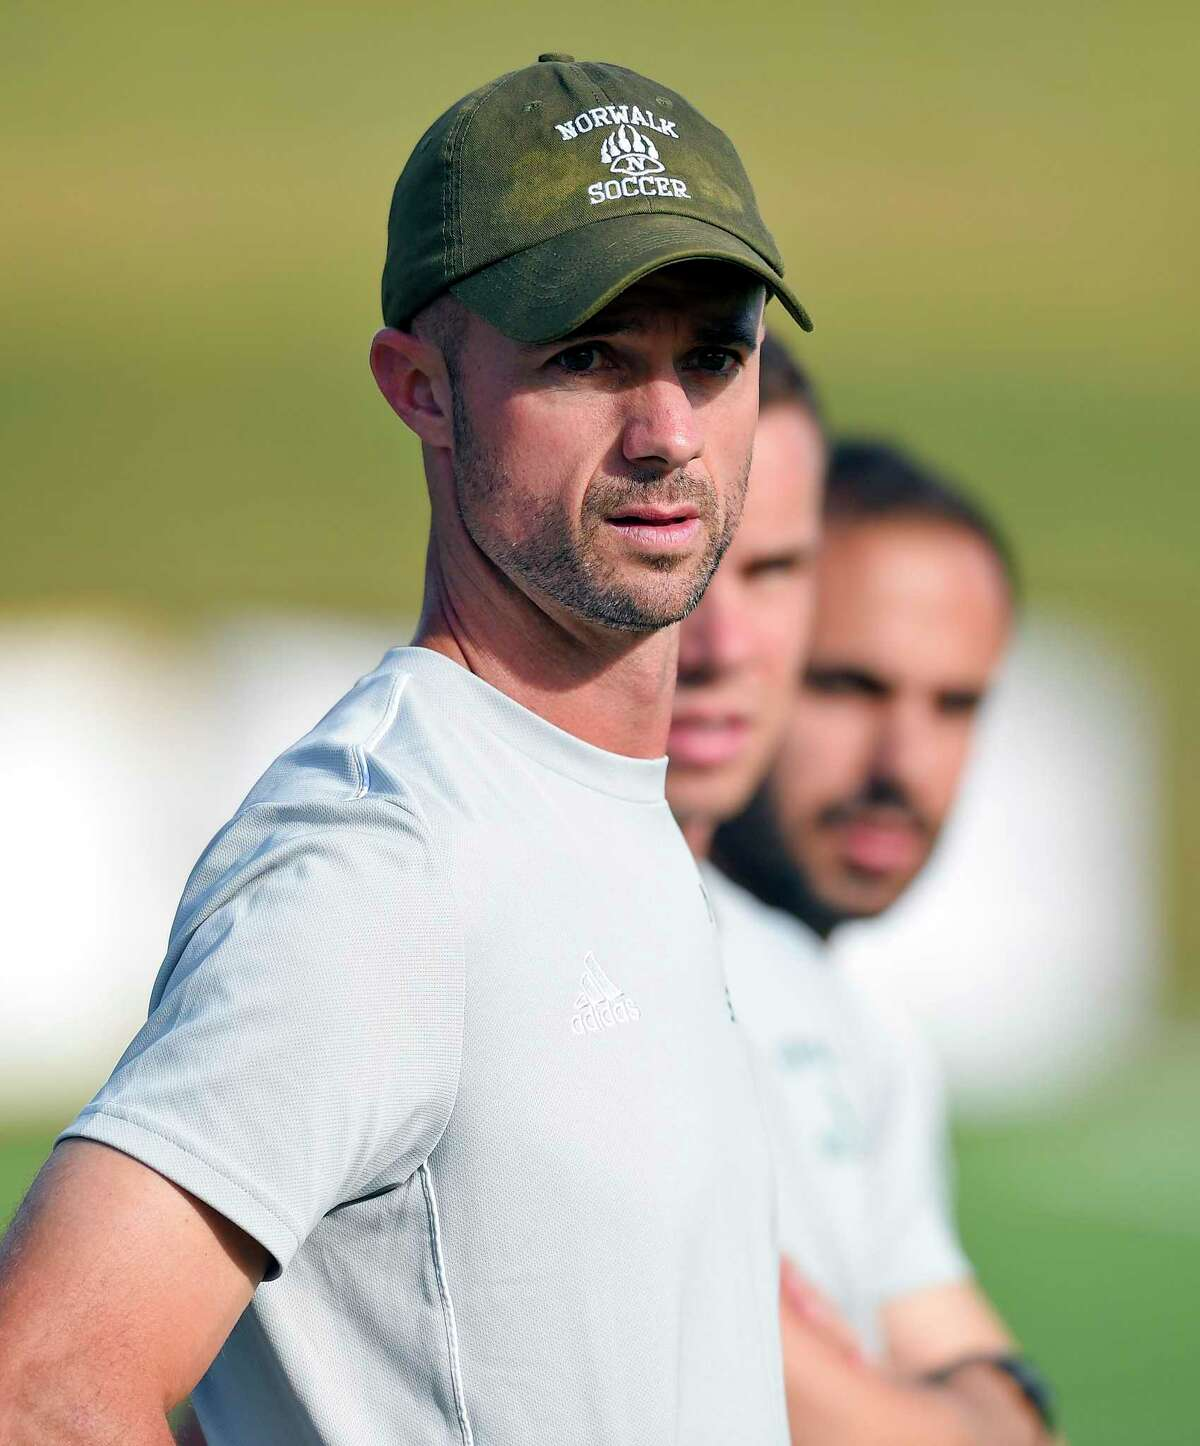 """Norwalk Head Coach Chris Laughton says of the FCIAC: """"This league is so hard, that's one thing we drill into the players but they have to understand, there are no nights off."""""""